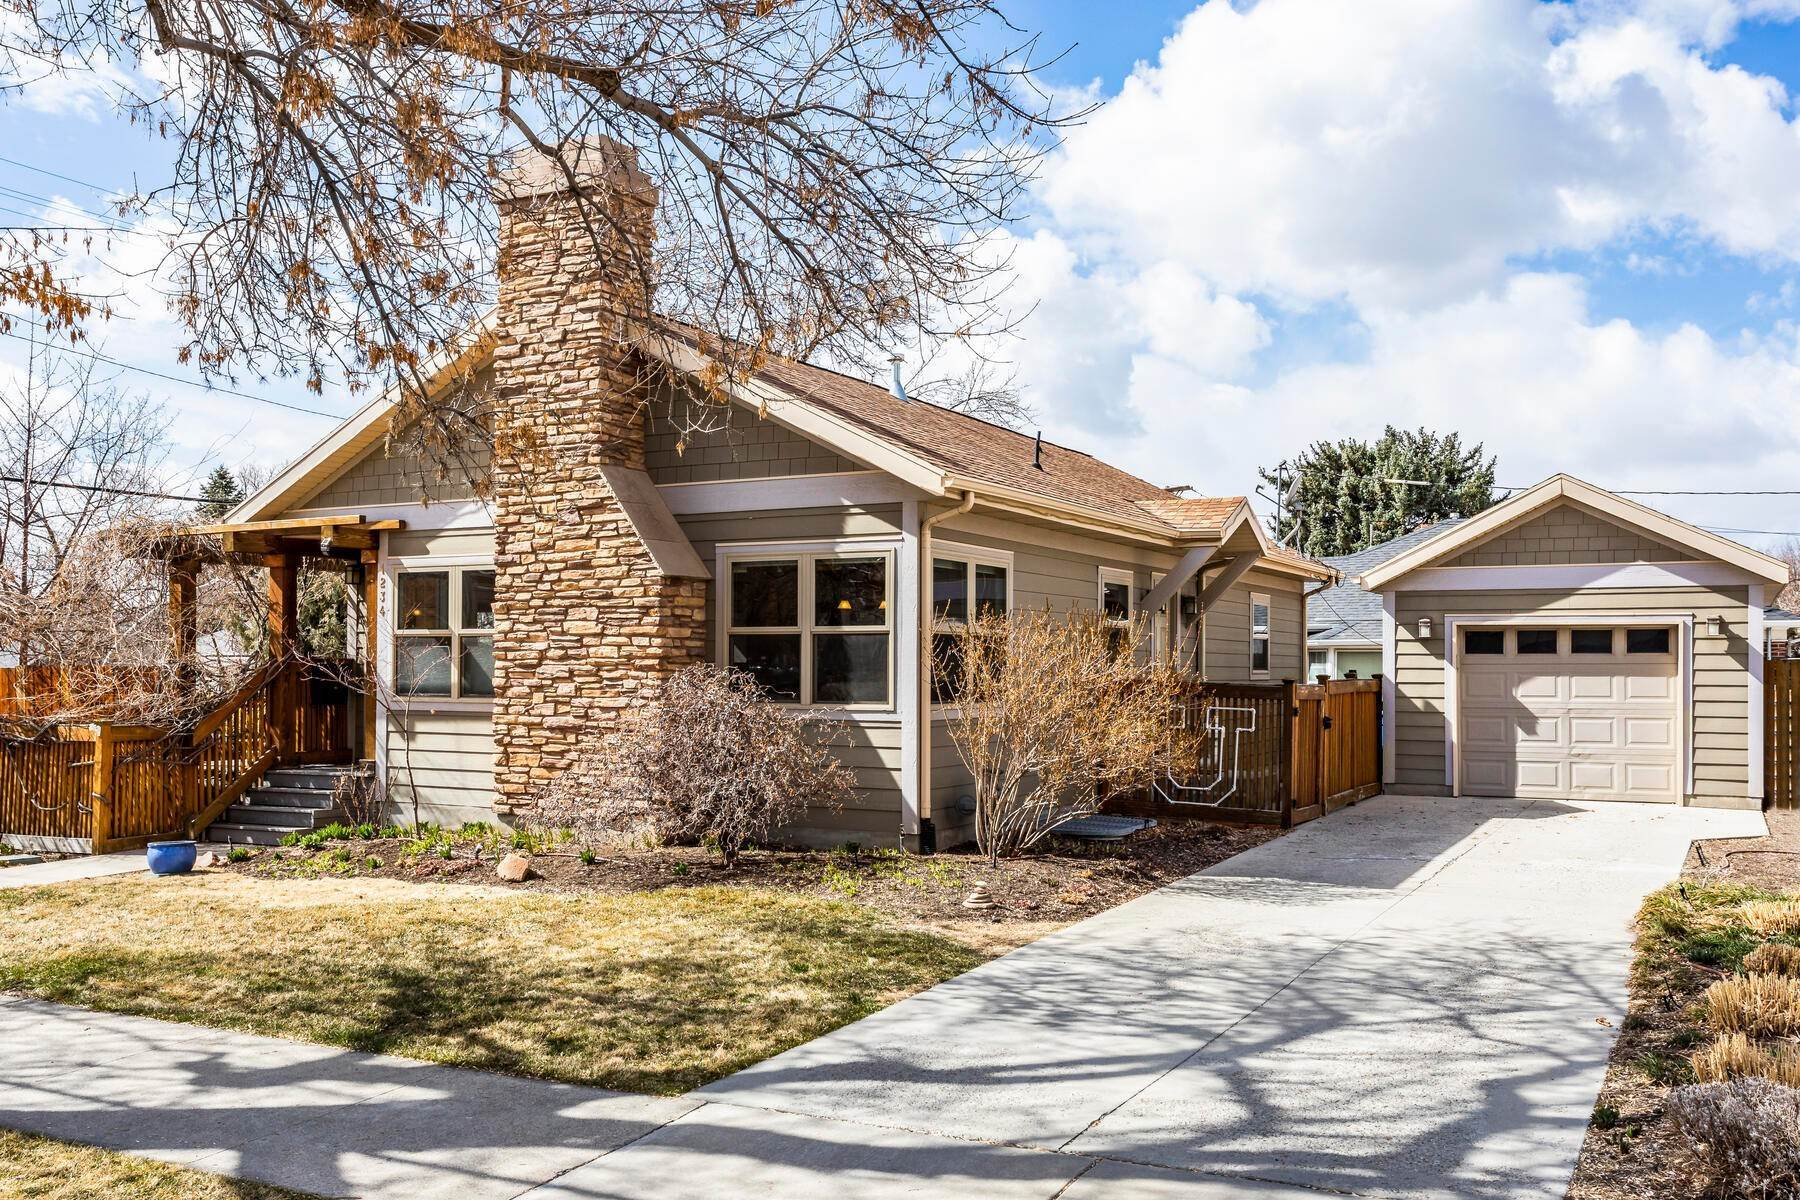 Property for Sale at Laird Park Classic 1234 South 1900 East Salt Lake City, Utah 84108 United States